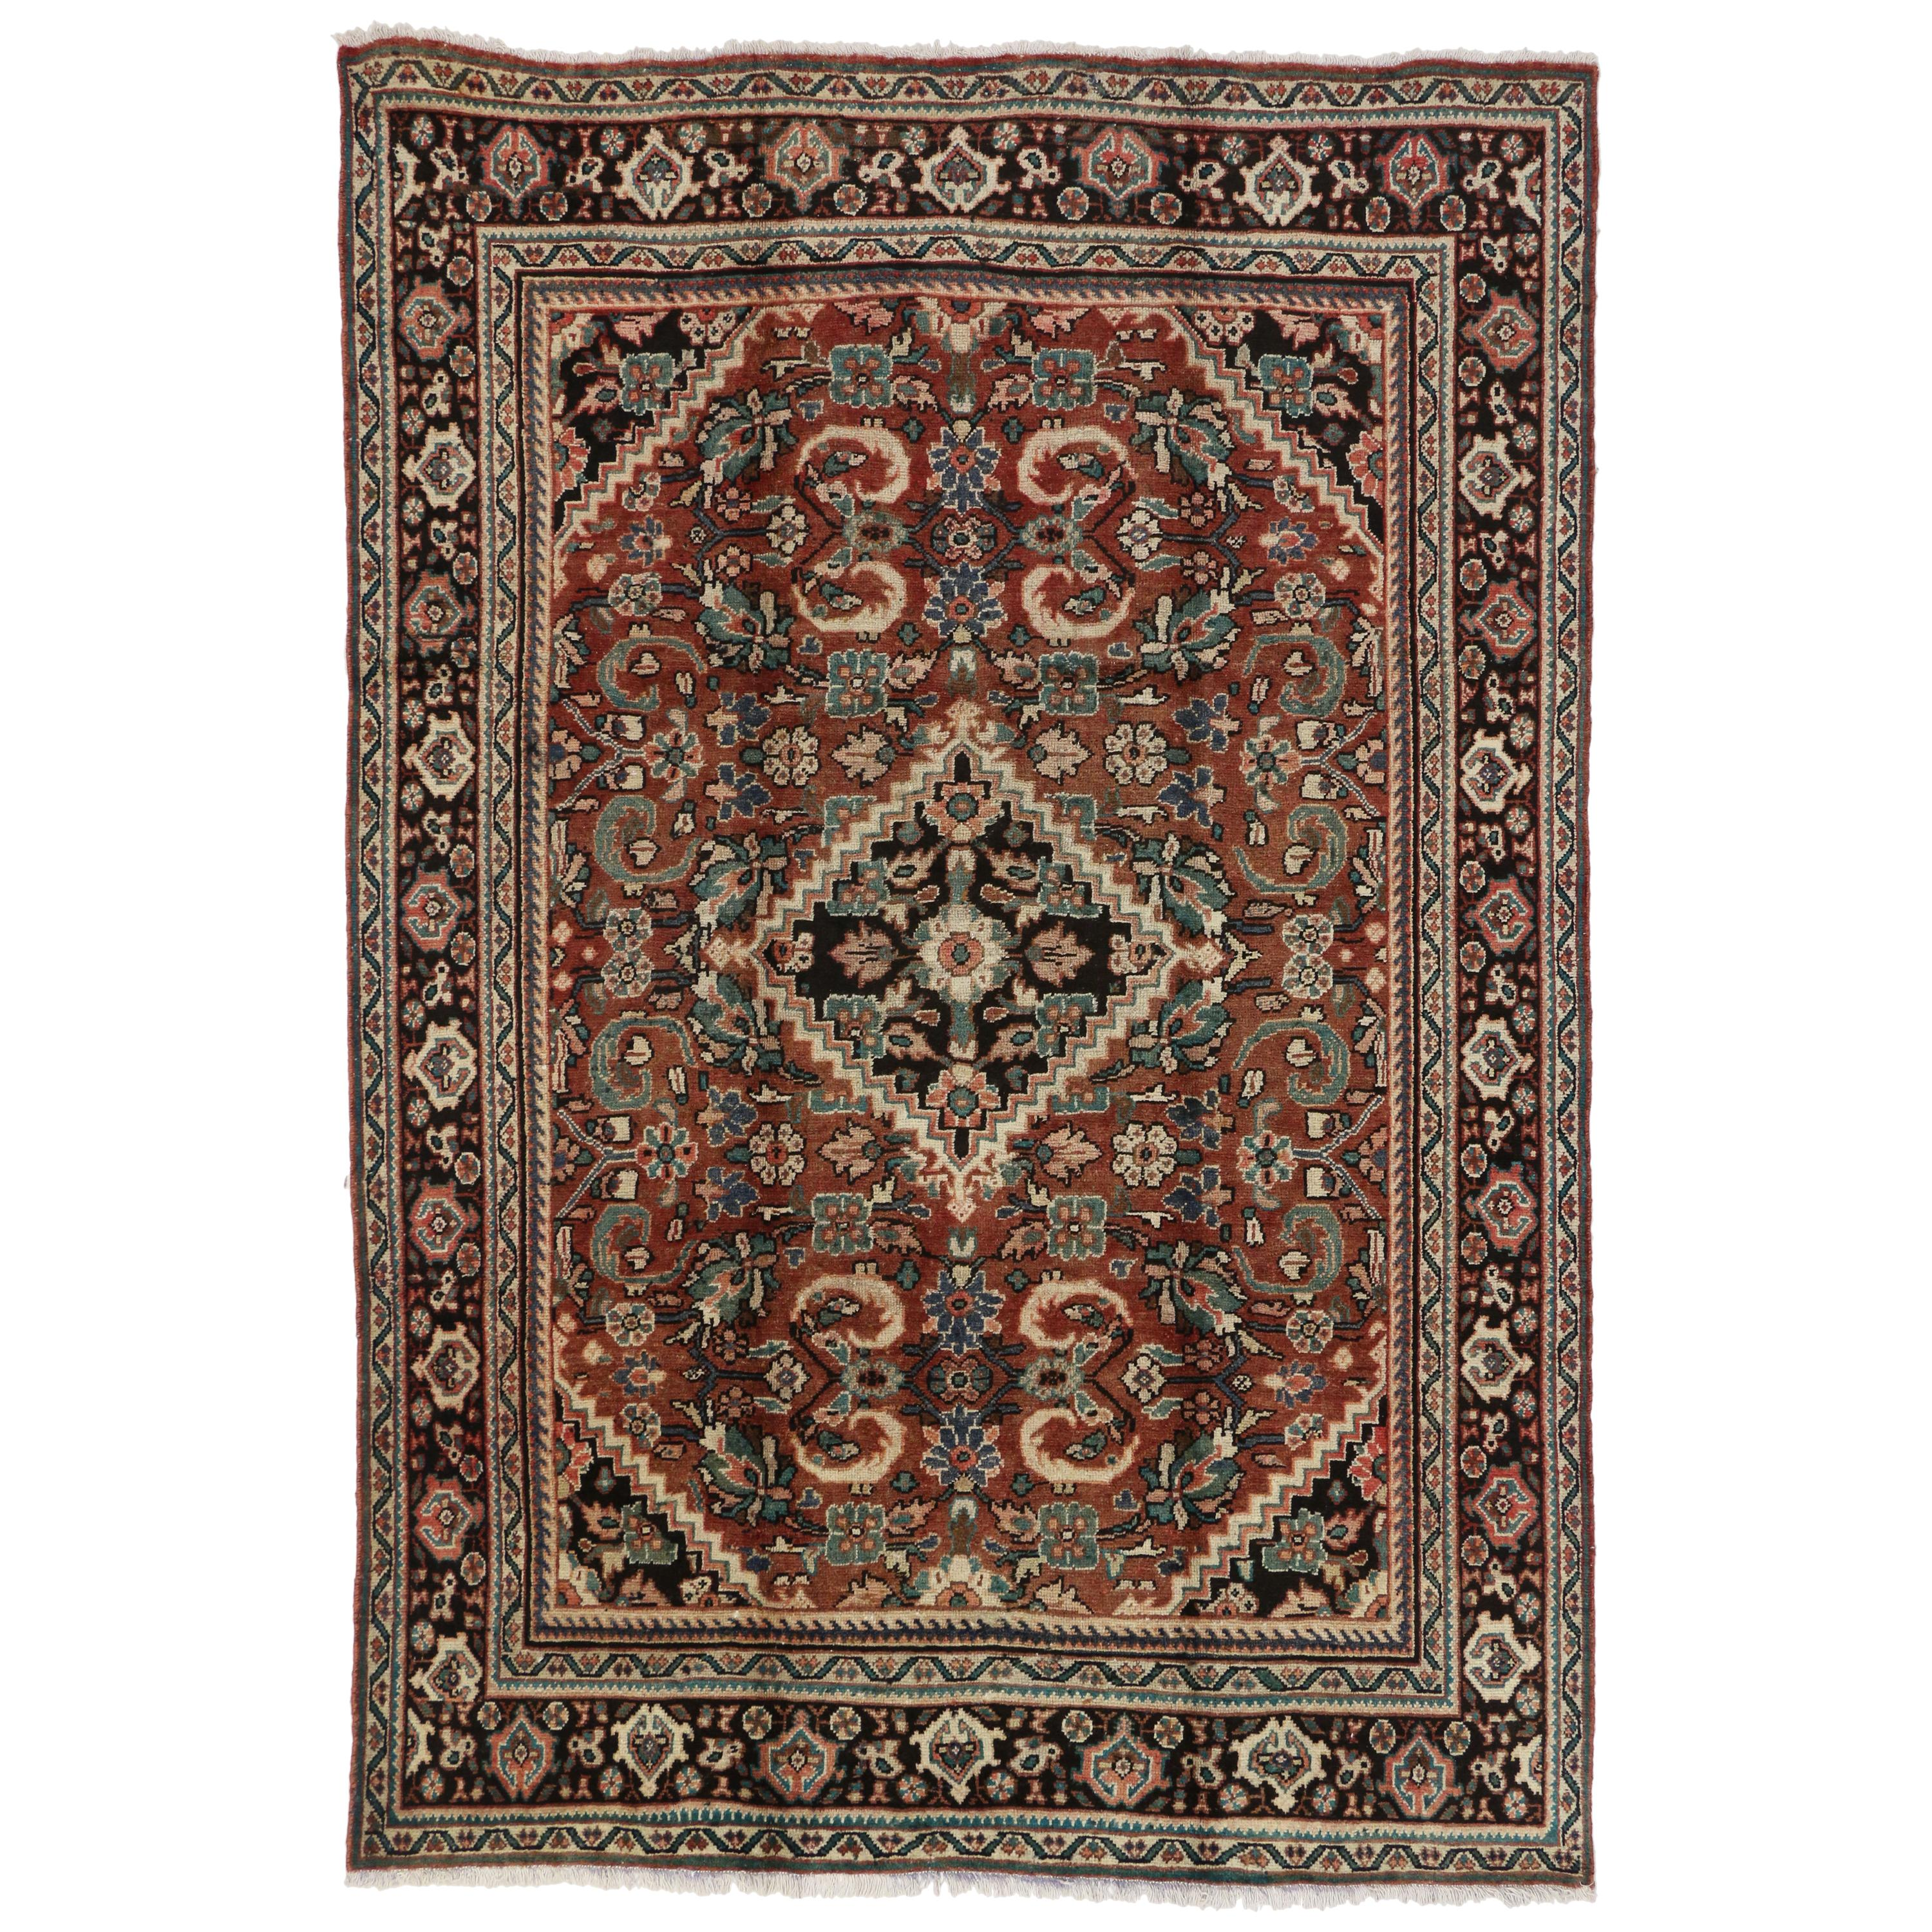 Vintage Persian Mahal Area Rug with Modern Rustic Luxe Style